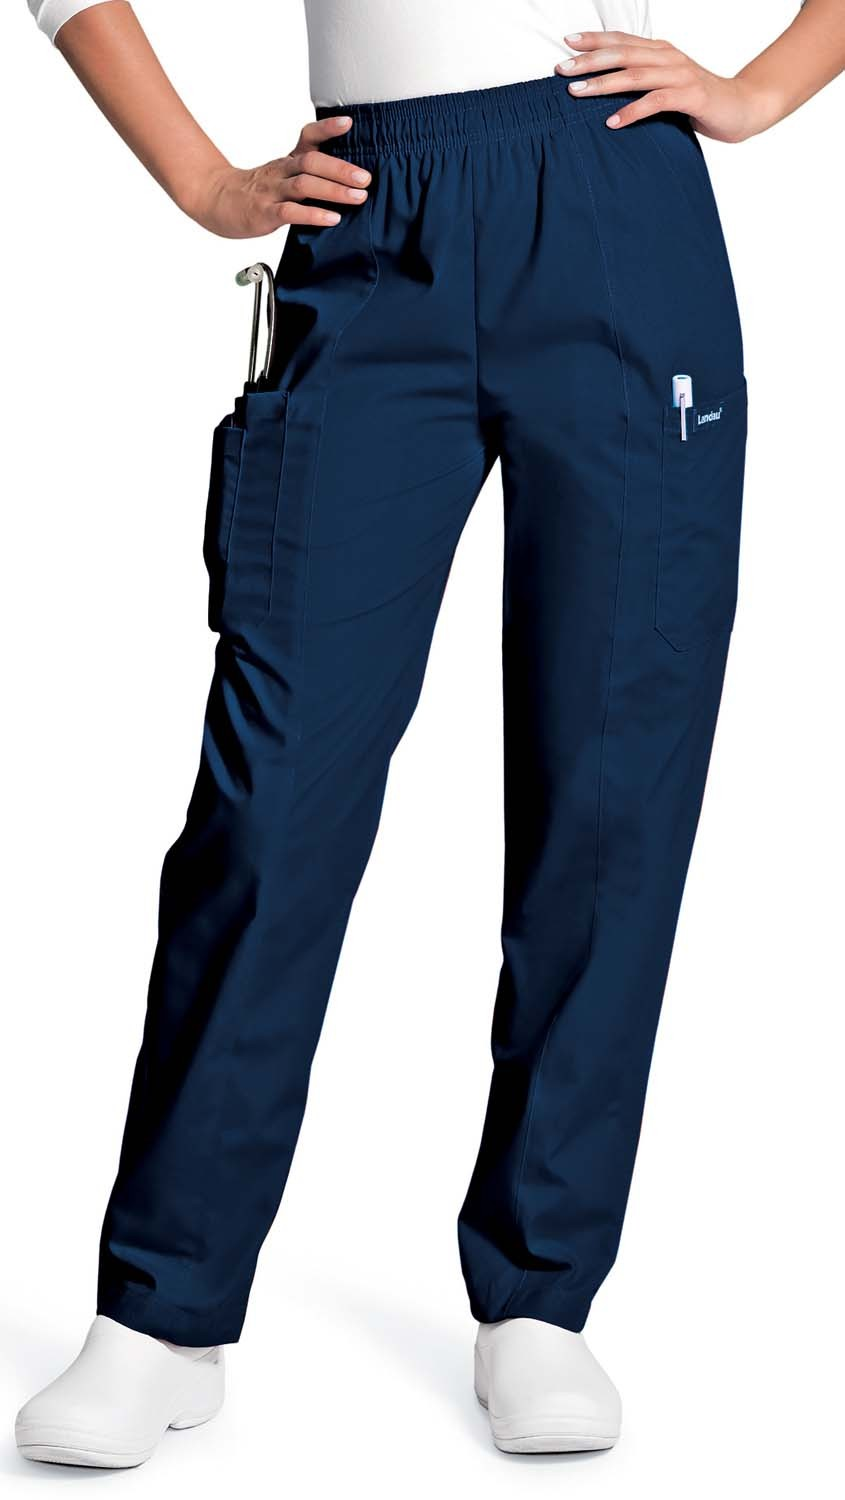 womens cargo pants with elastic waist photo - 1